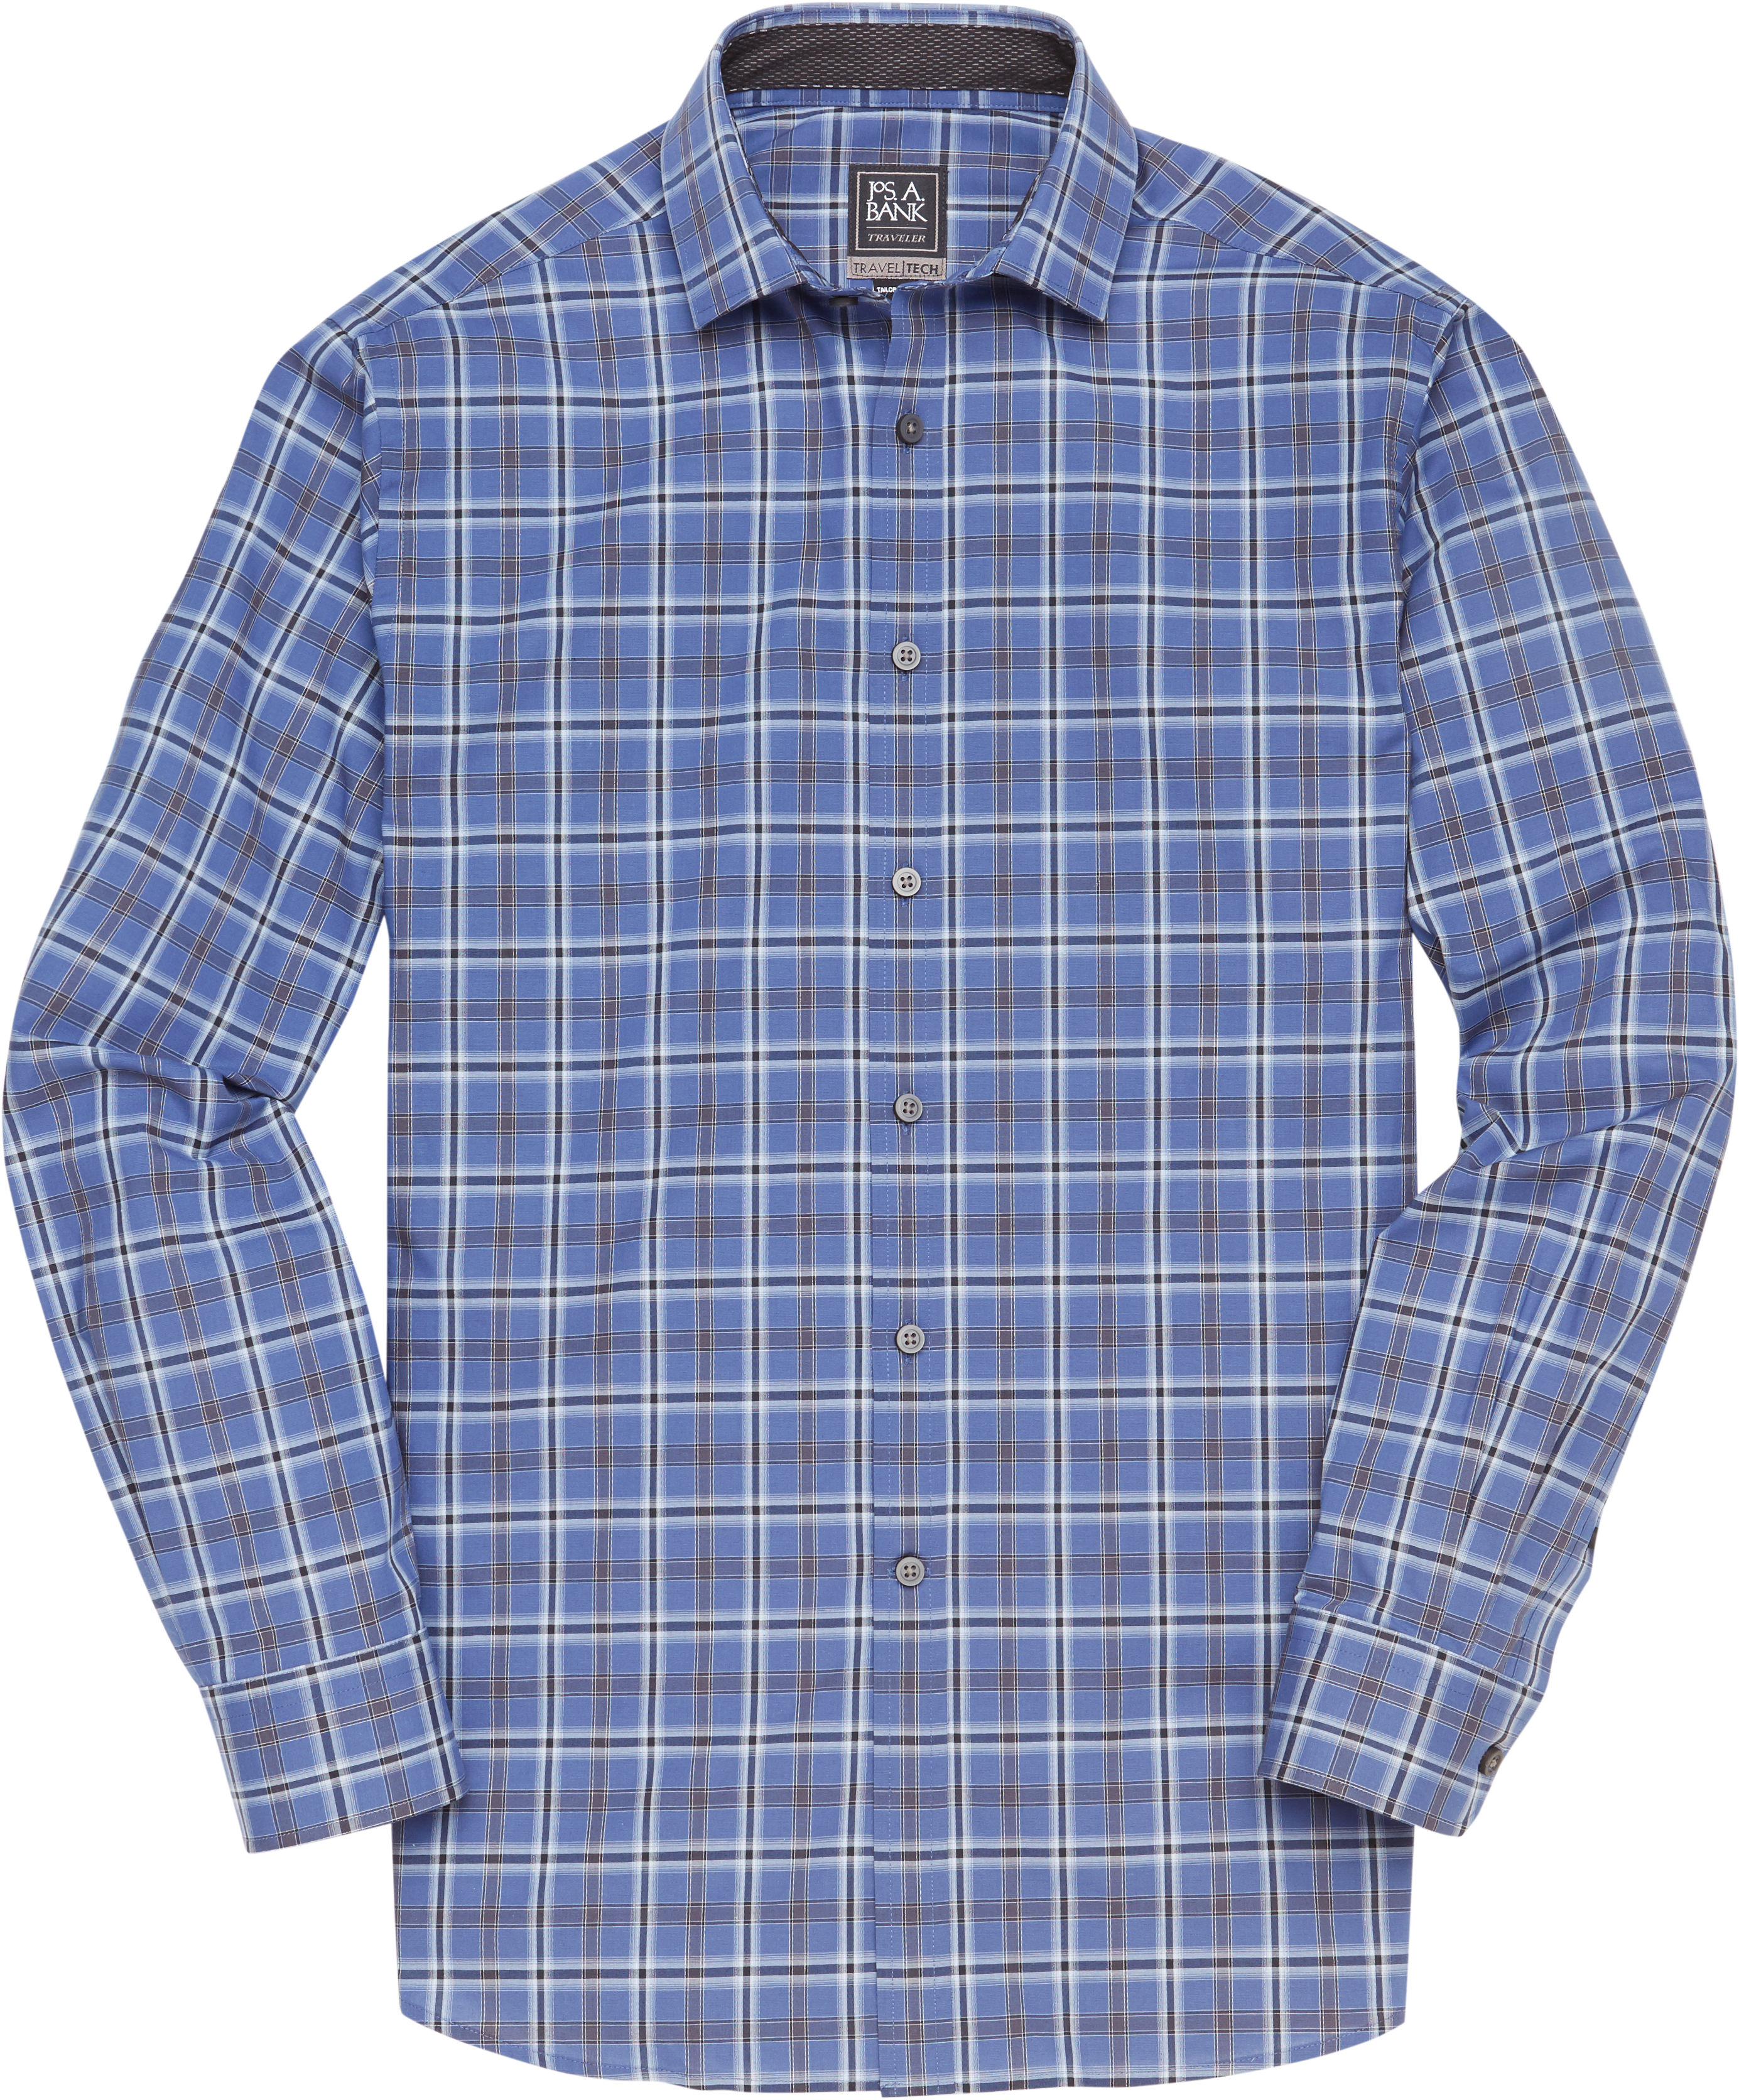 Travel Tech Traditional Spread Collar Plaid Sportshirt (Big & Tall,Blue)